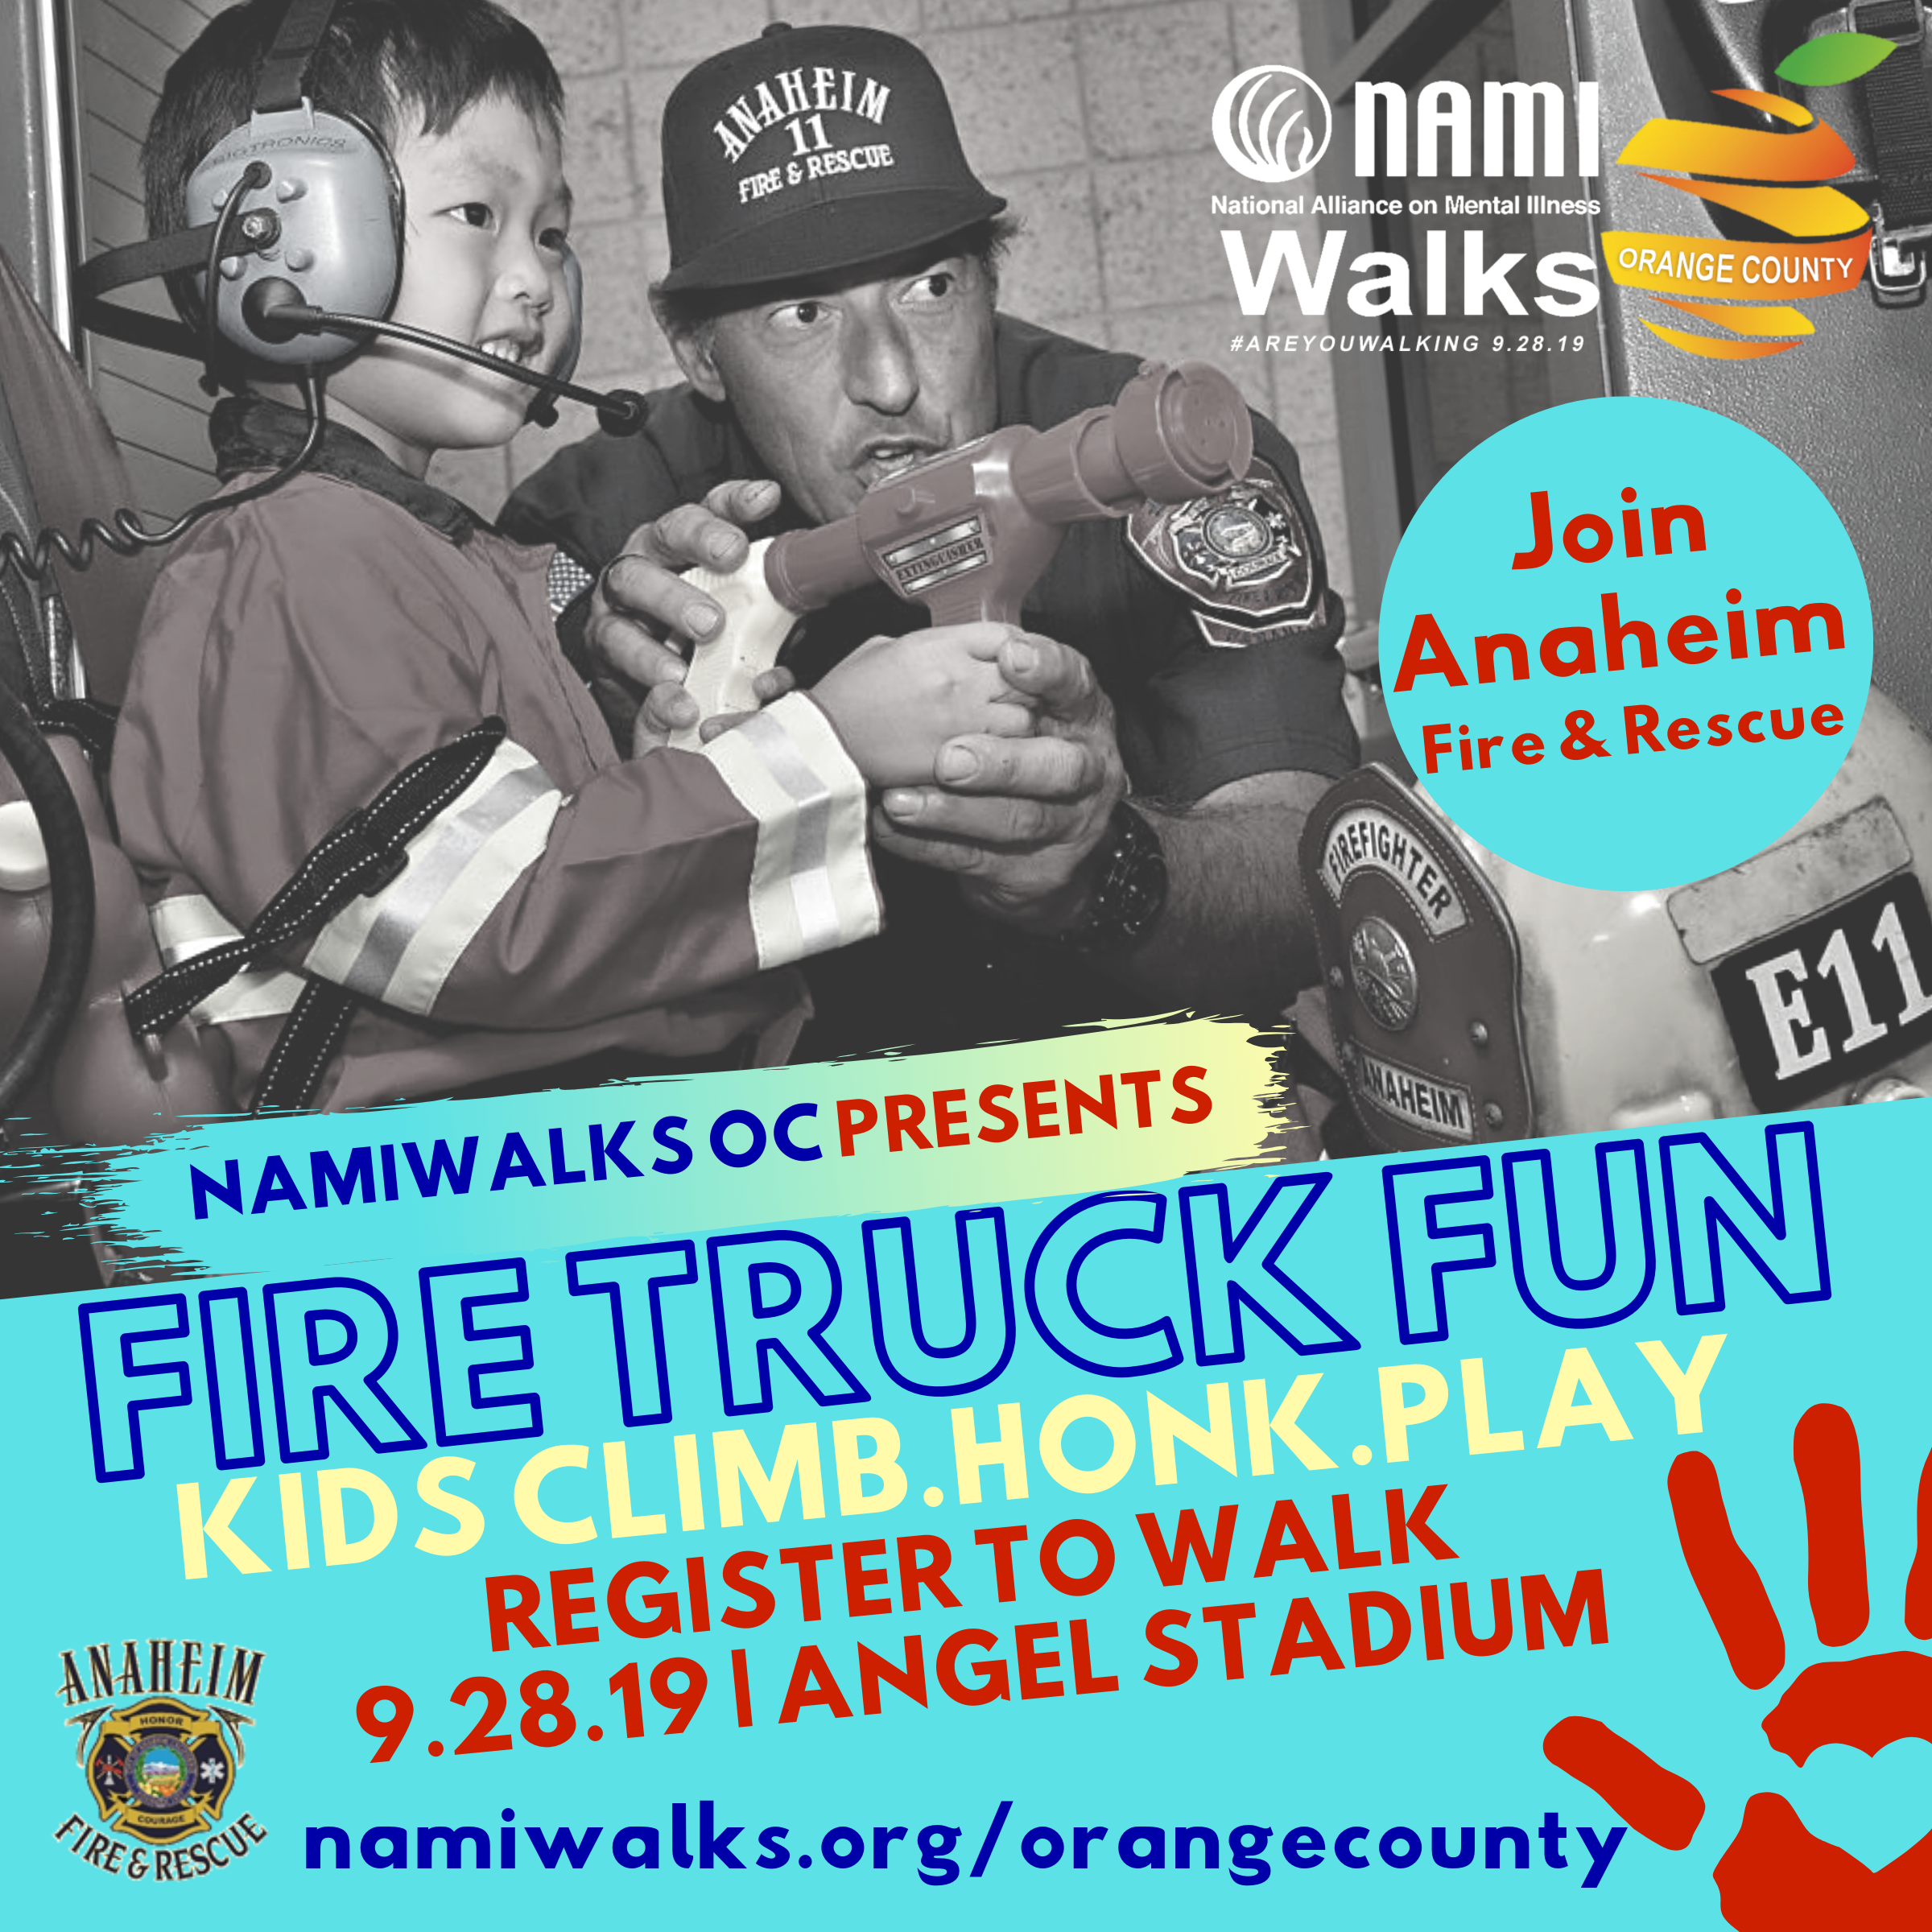 Walk Wednesday - ANA Fire & Rescue.png